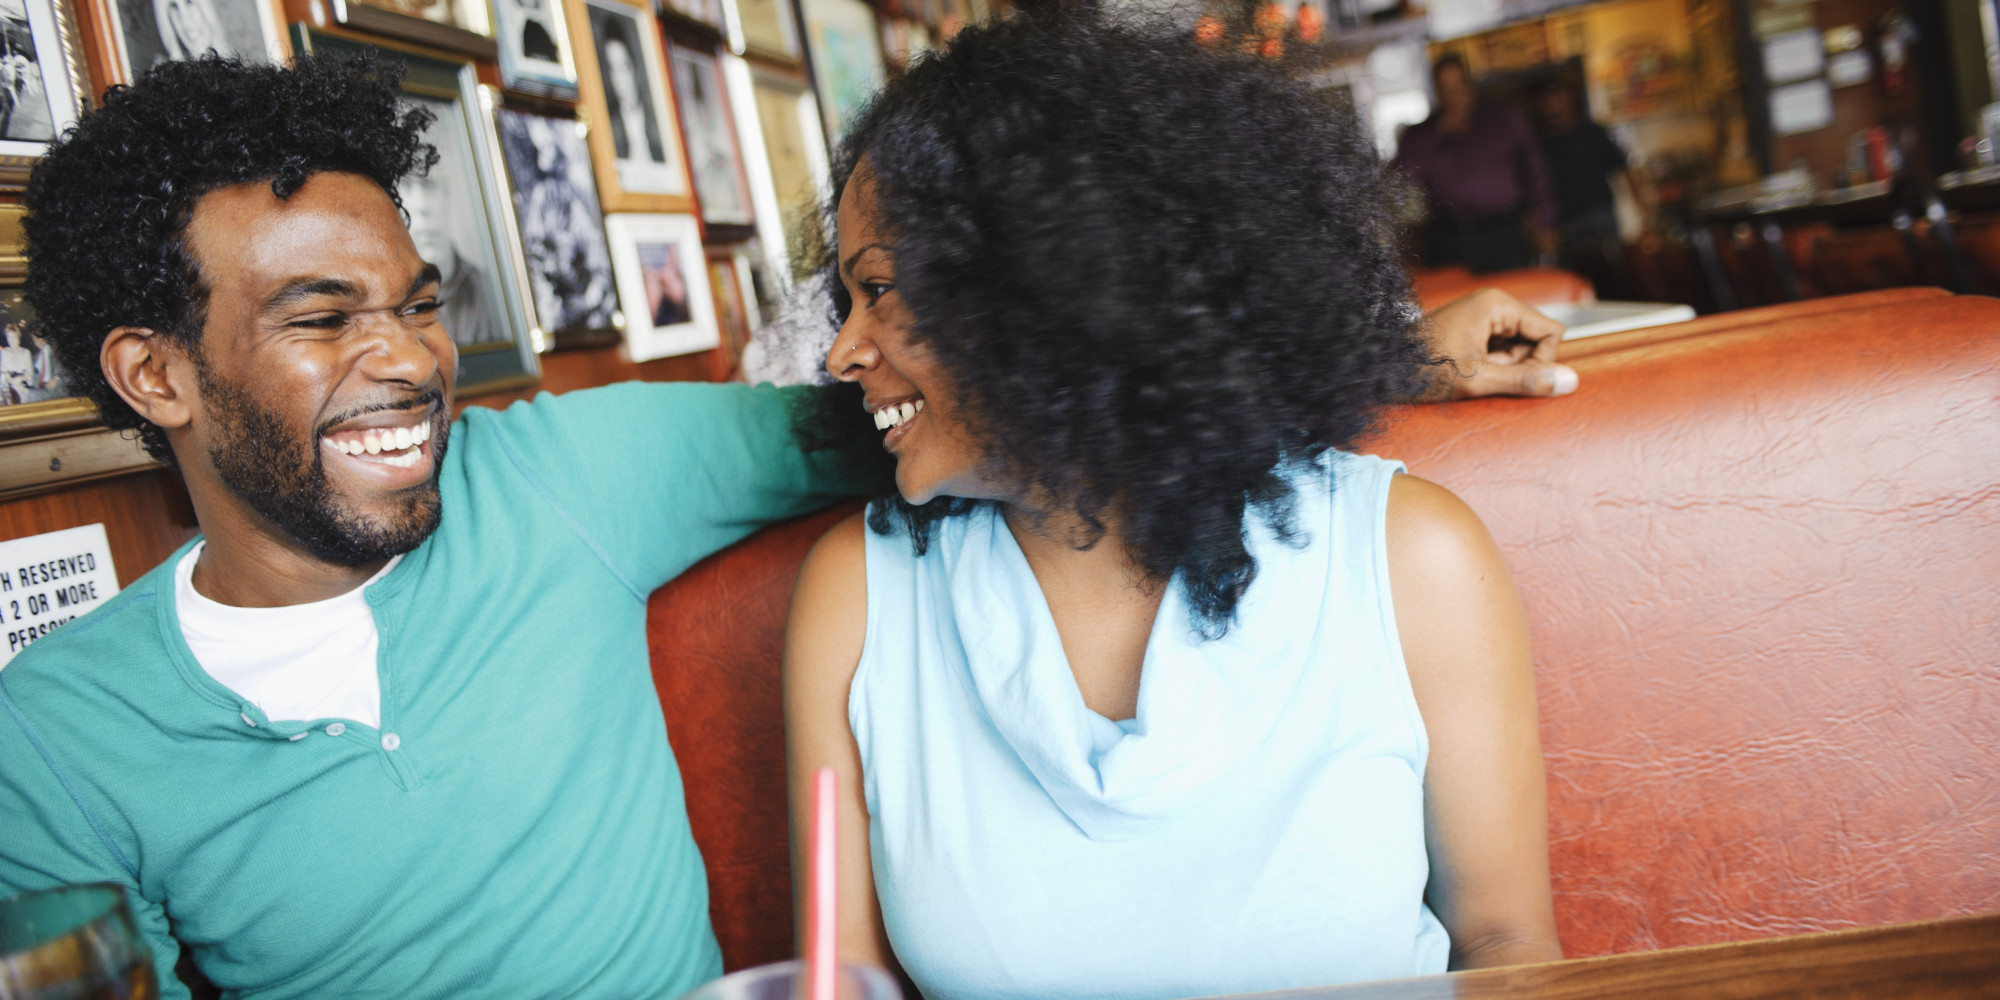 norene black single women We've asked single black men to share some of the real perceptions floating around about dating black women, to help jumpstart the conversation and dispel some of.